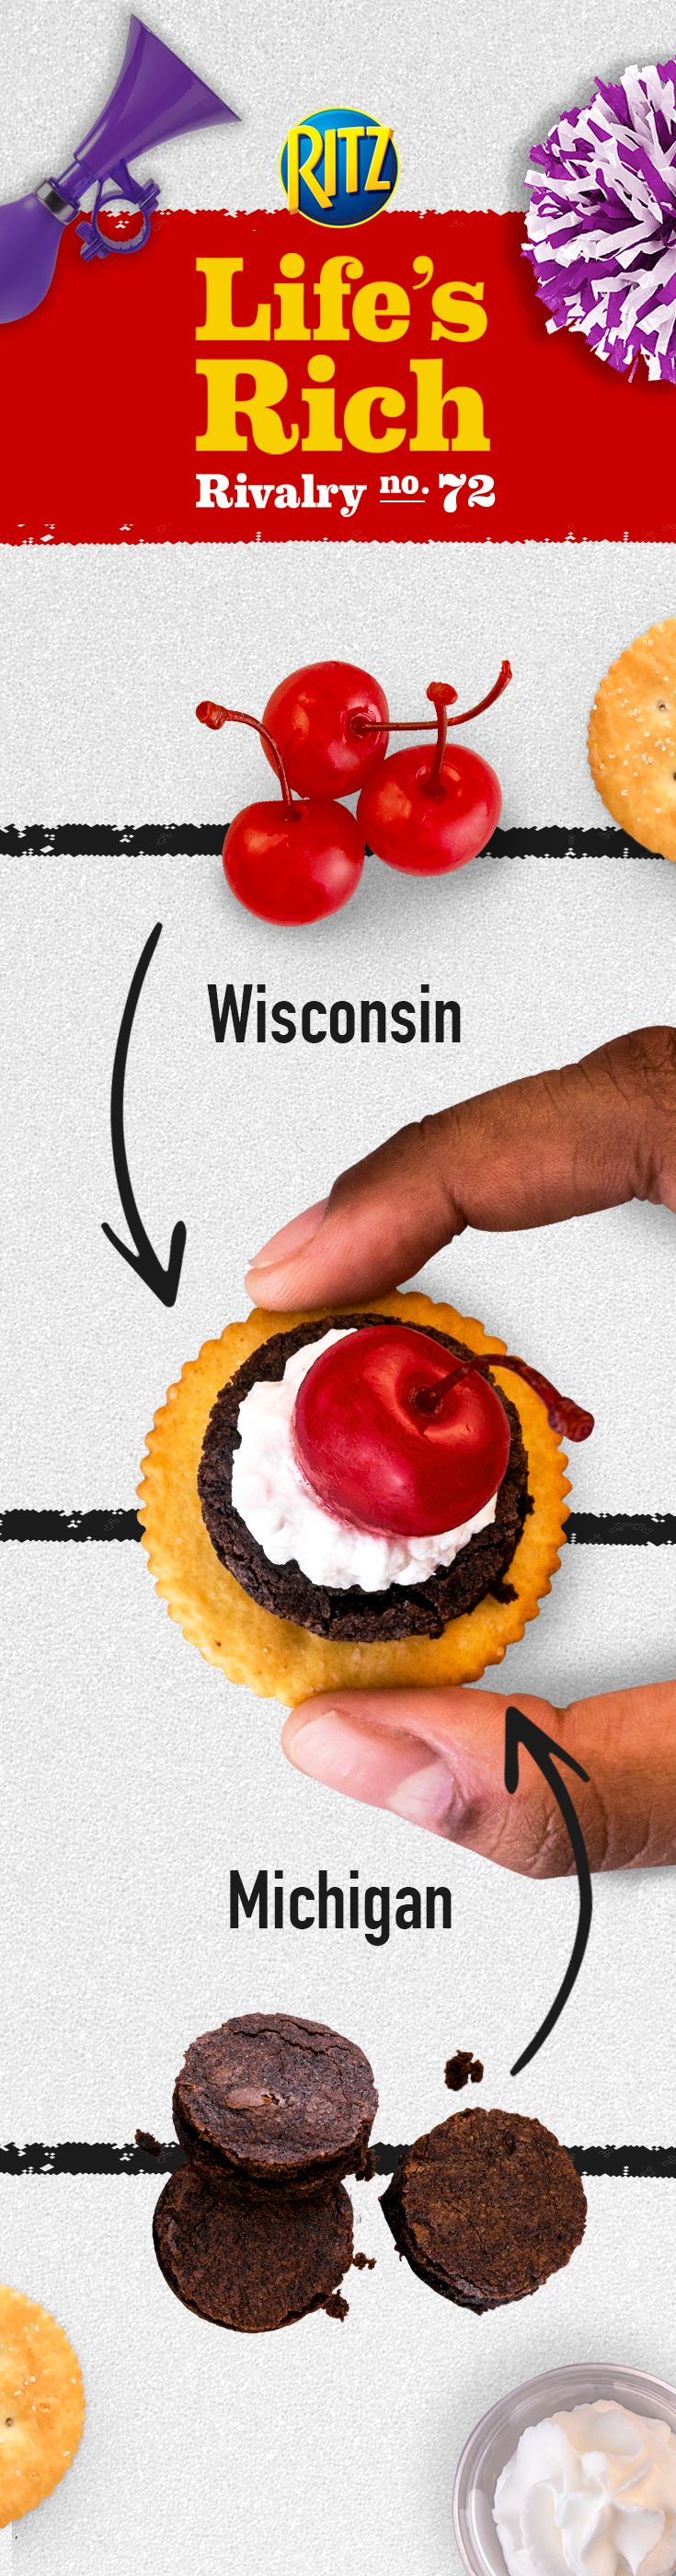 Homegating should never be bitter! When midwest fans are on opposite sides of the living room during the game, have them meet in the middle with Michigan-style brownies and Wisconsin lovers' cherries in Sweet & Salty Brownie Toppers. Follow this easy recipe: 1. Cut brownies into Cracker-sized pieces 2. Top w/ whipped cream & a cherry 3. Enjoy!